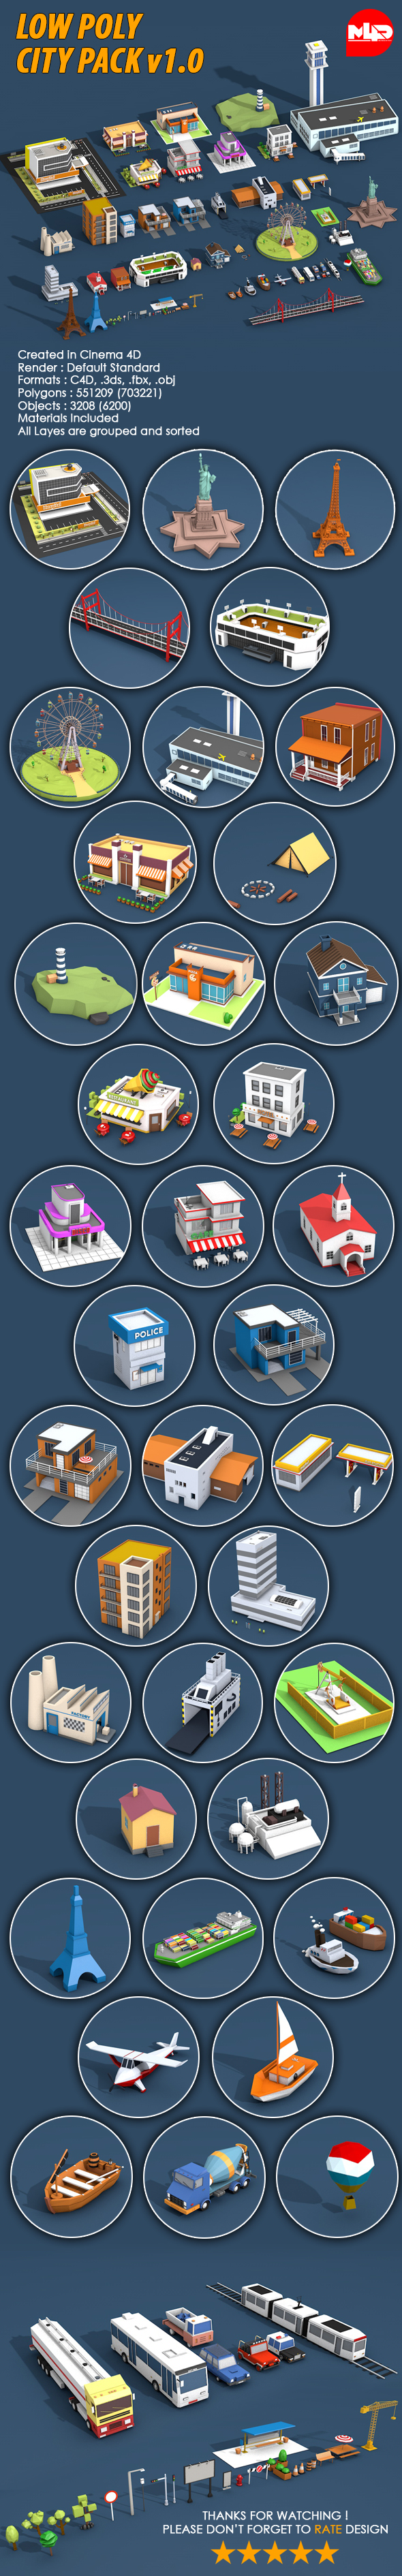 Low Poly City Pack v1.0 - 3DOcean Item for Sale